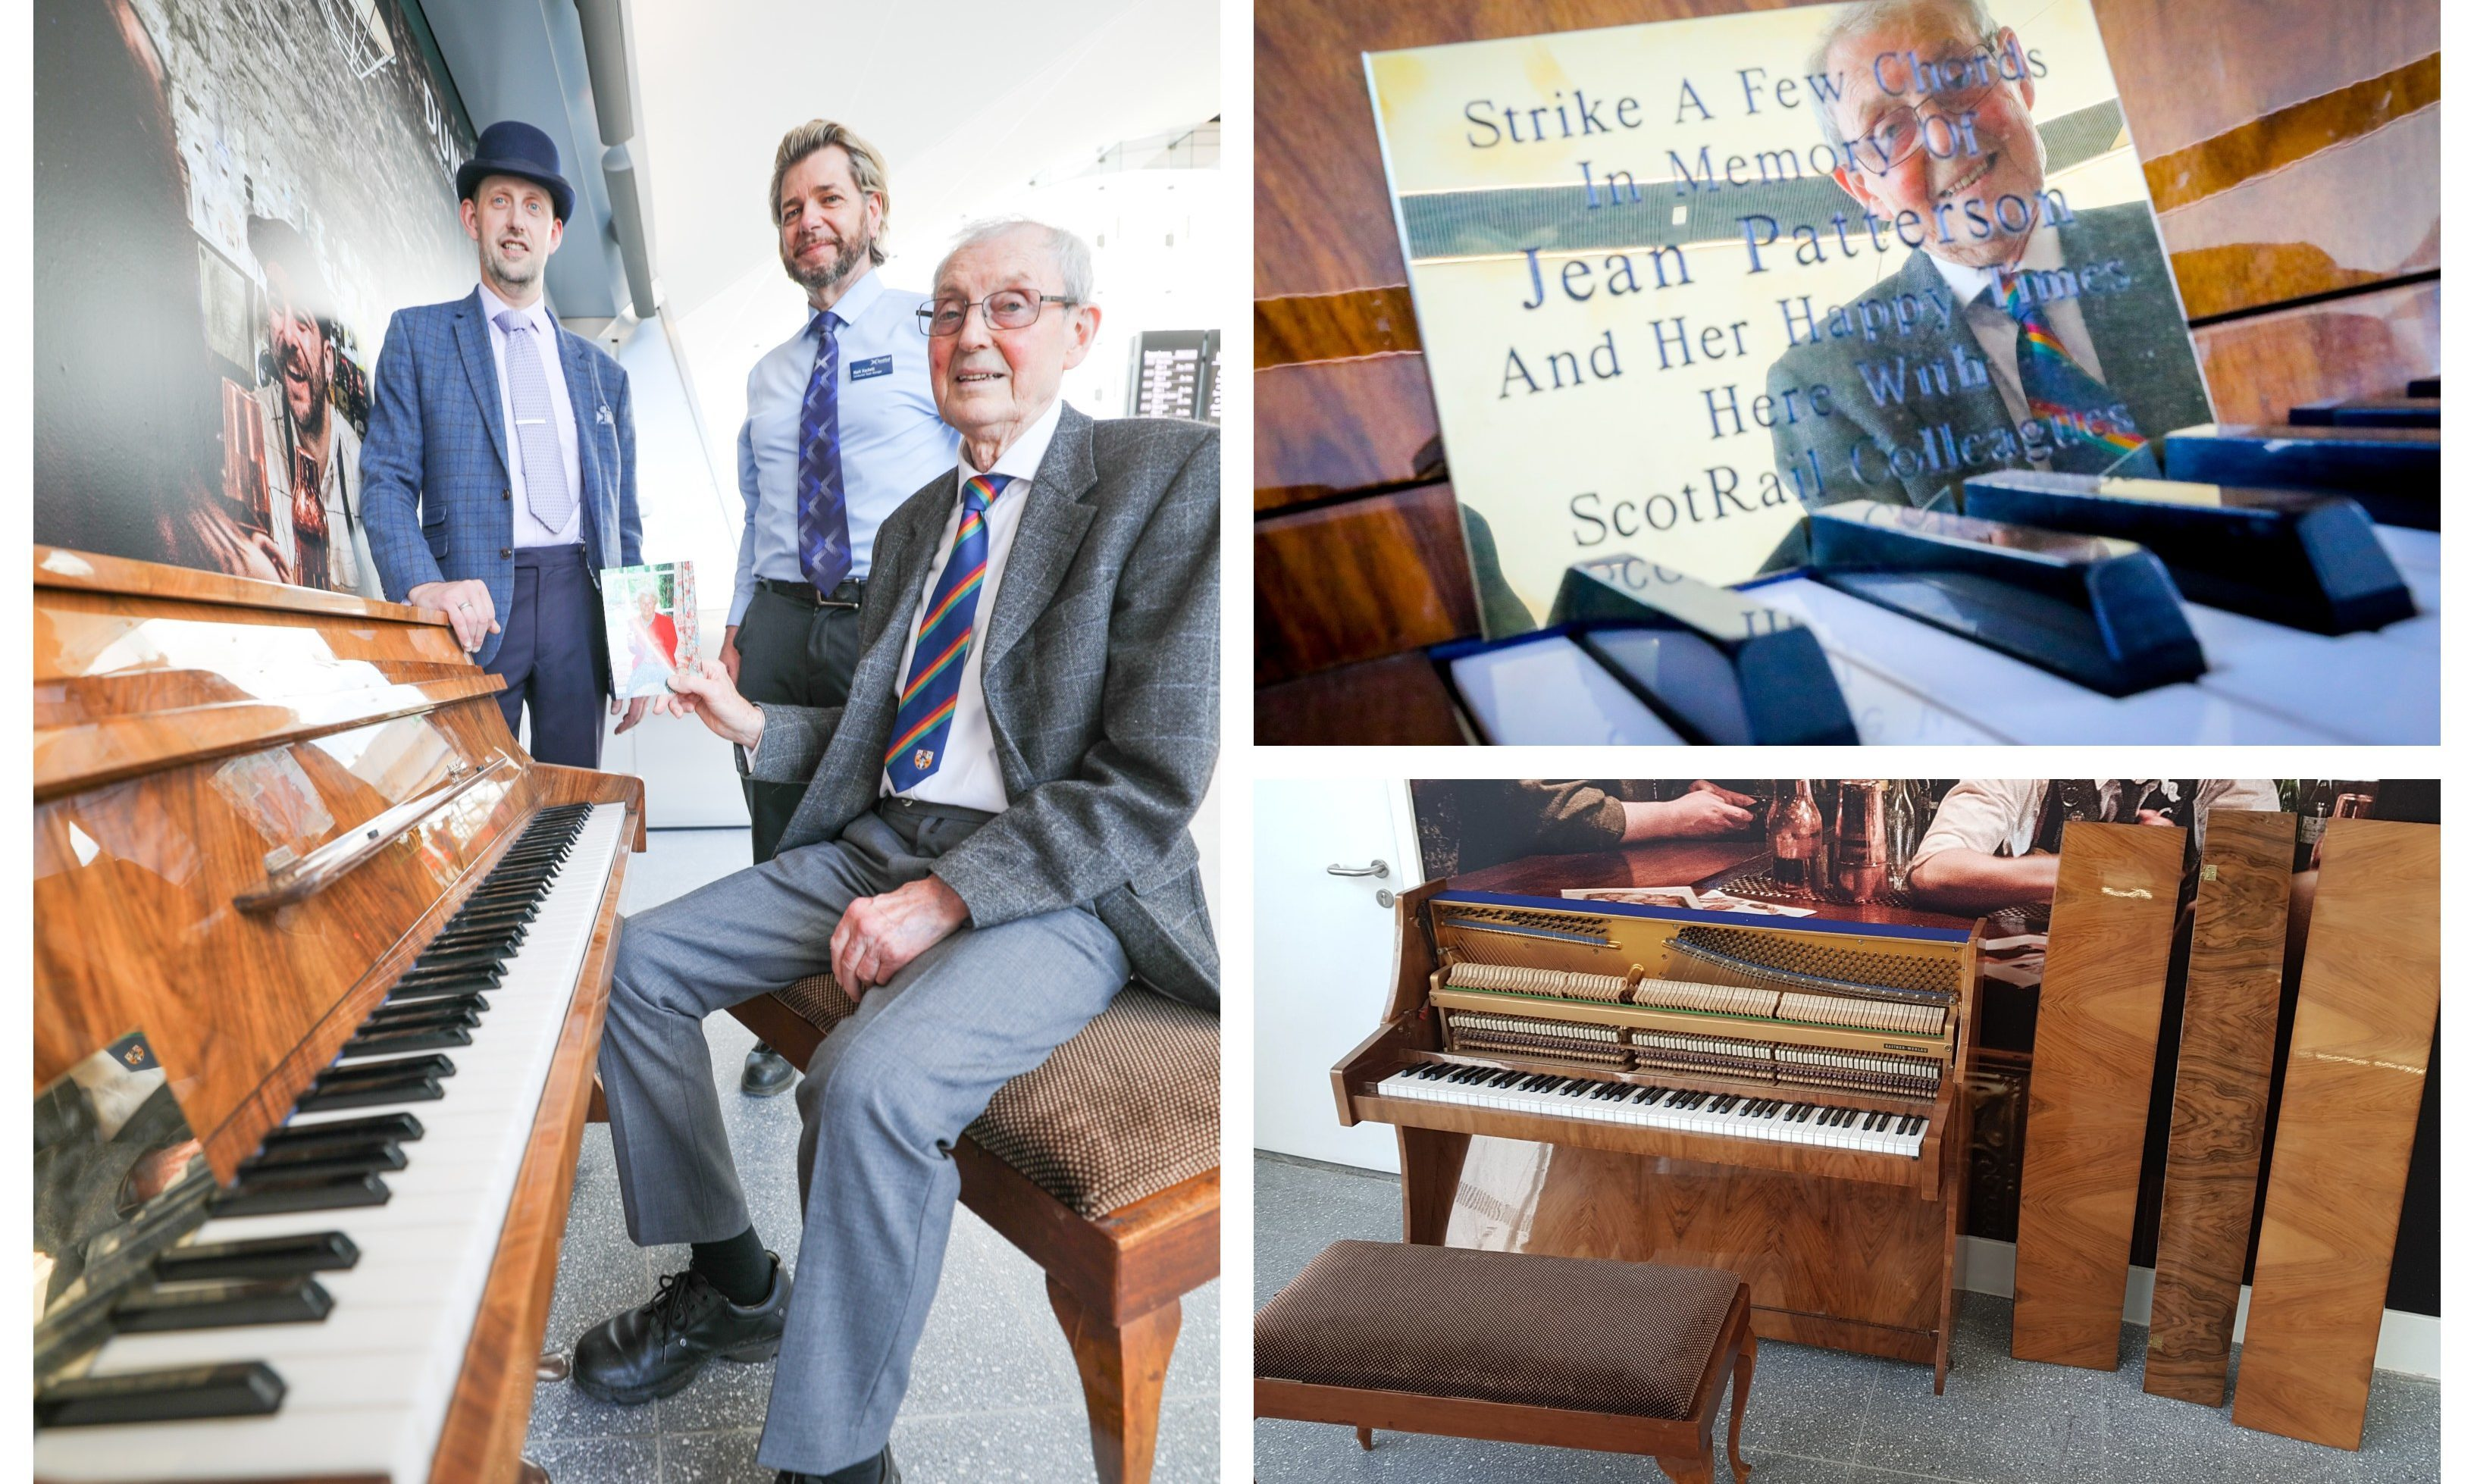 Dave Patterson gifted the piano to Dundee Station in memory of his wife, Jean. The bottom-left photo shows the condition of the instrument after vandals damaged it.